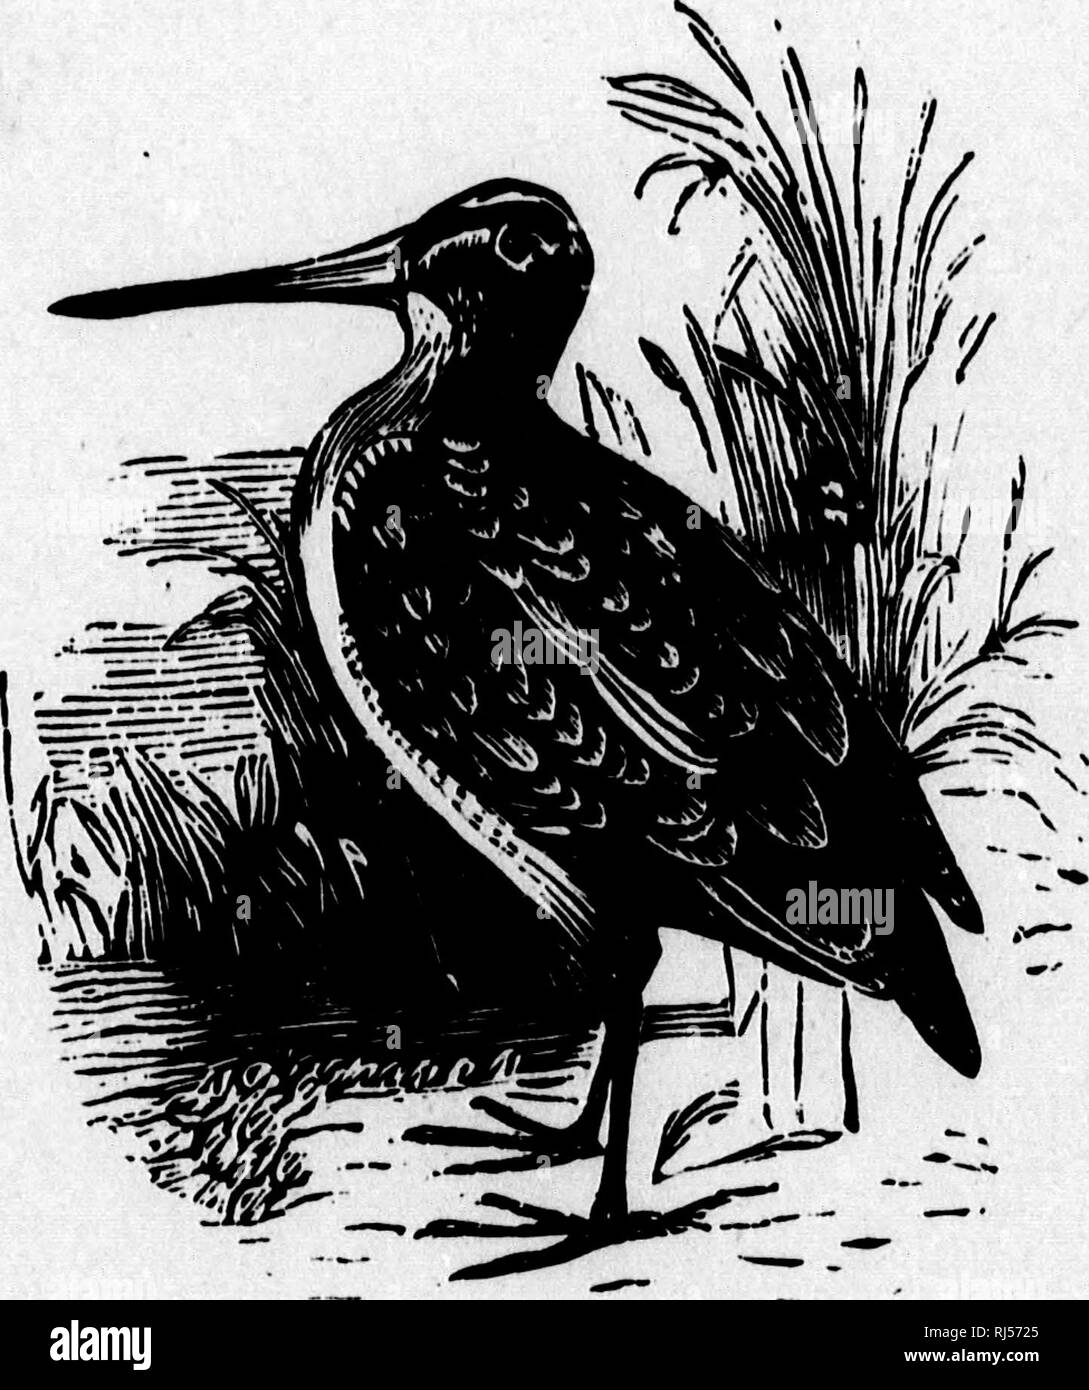 . The birds of Canada [microform] : with descriptions of their habits, food, nests, eggs, times of arrival and departure. Birds; Ornithology; Oiseaux; Ornithologie. '^. WILSON'S SNIPE. p. 8l. Please note that these images are extracted from scanned page images that may have been digitally enhanced for readability - coloration and appearance of these illustrations may not perfectly resemble the original work.. Ross, Alexander Milton, 1832-1897. Toronto : H. Rowsell Stock Photo